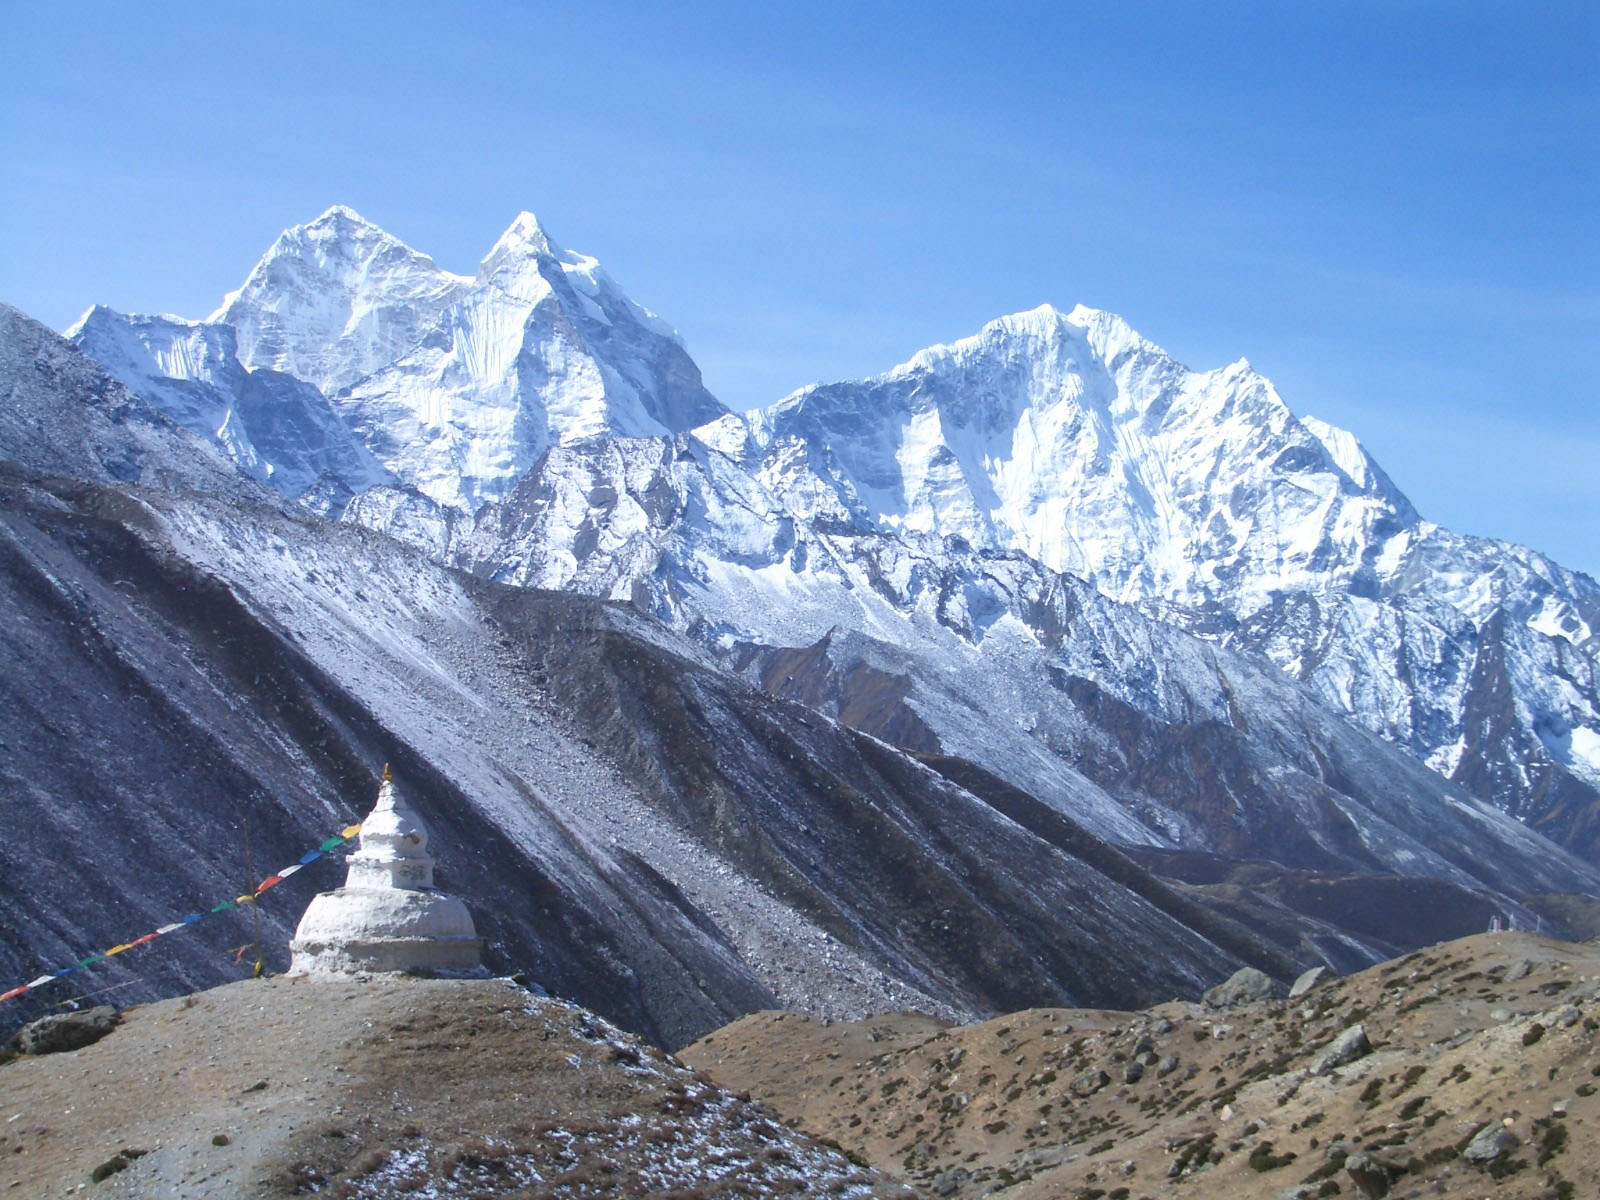 Tallest Mountains, Makalu West Face, Everest, Top peak view